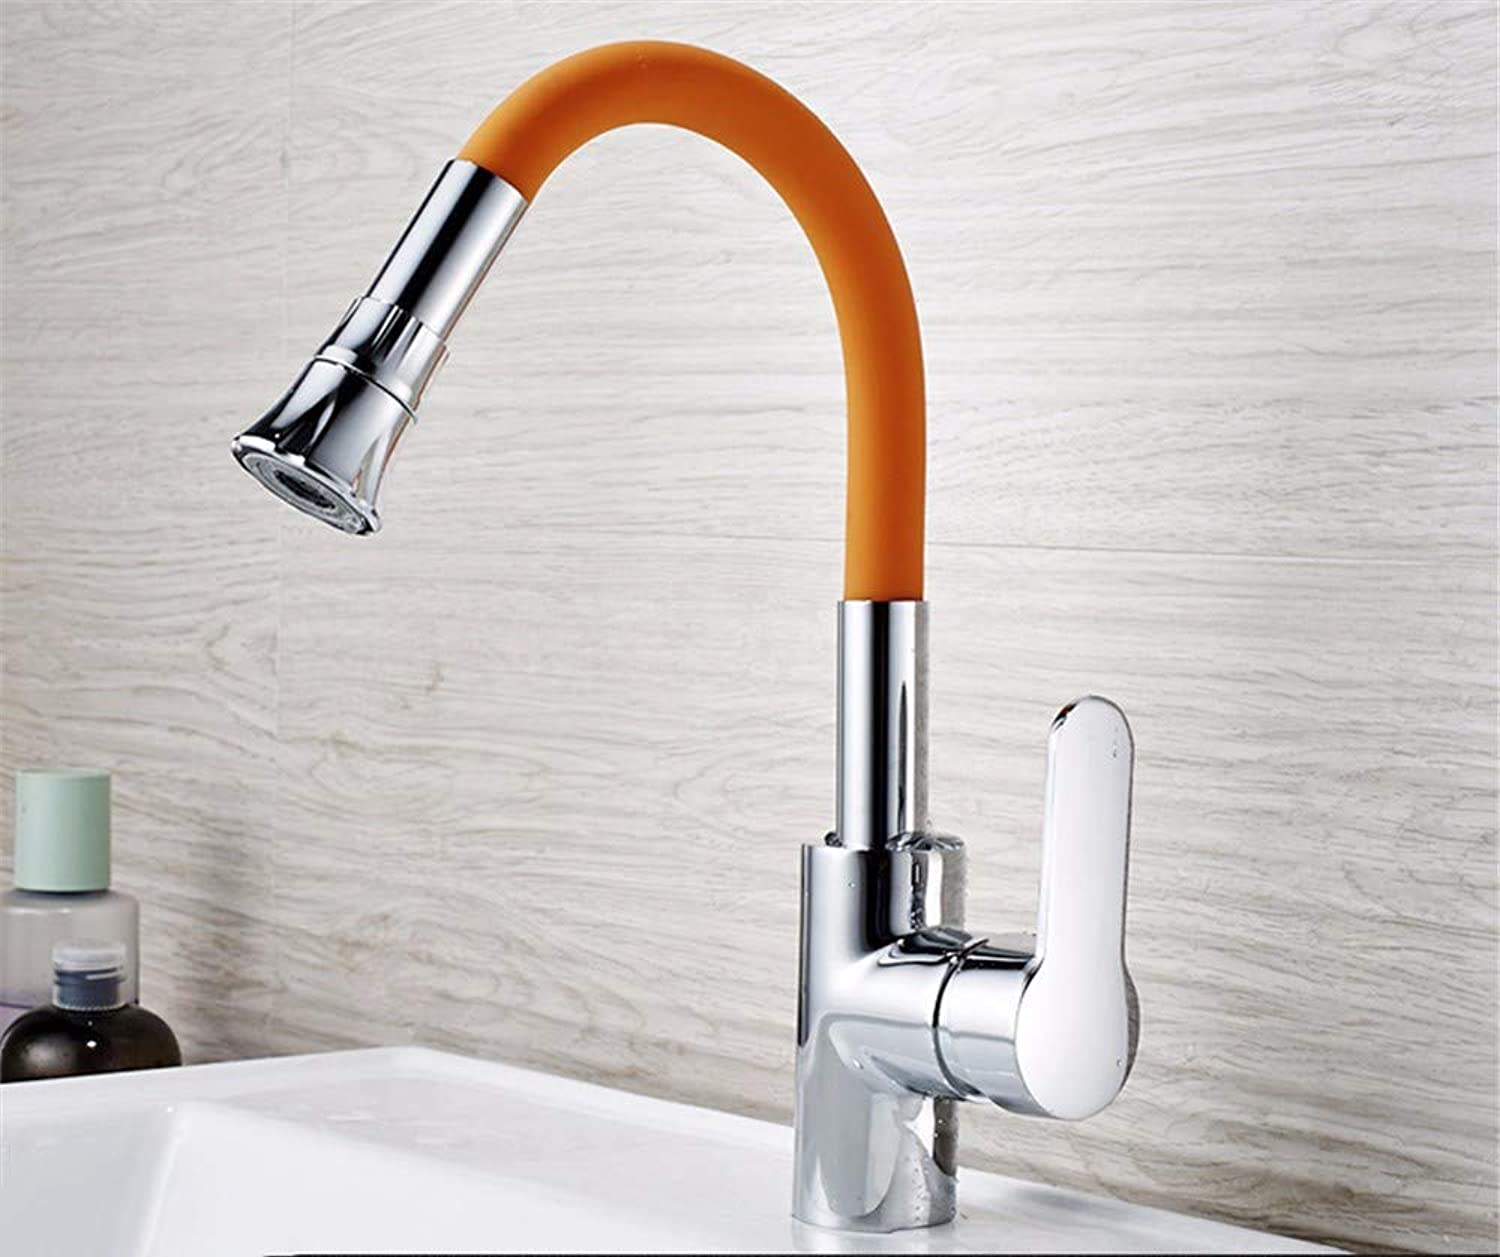 Pyty123-Faucet Basin Faucet All-Copper Single Hole Hot And Cold Faucet Bathroom Above Counter Basin Universal Faucet, orange